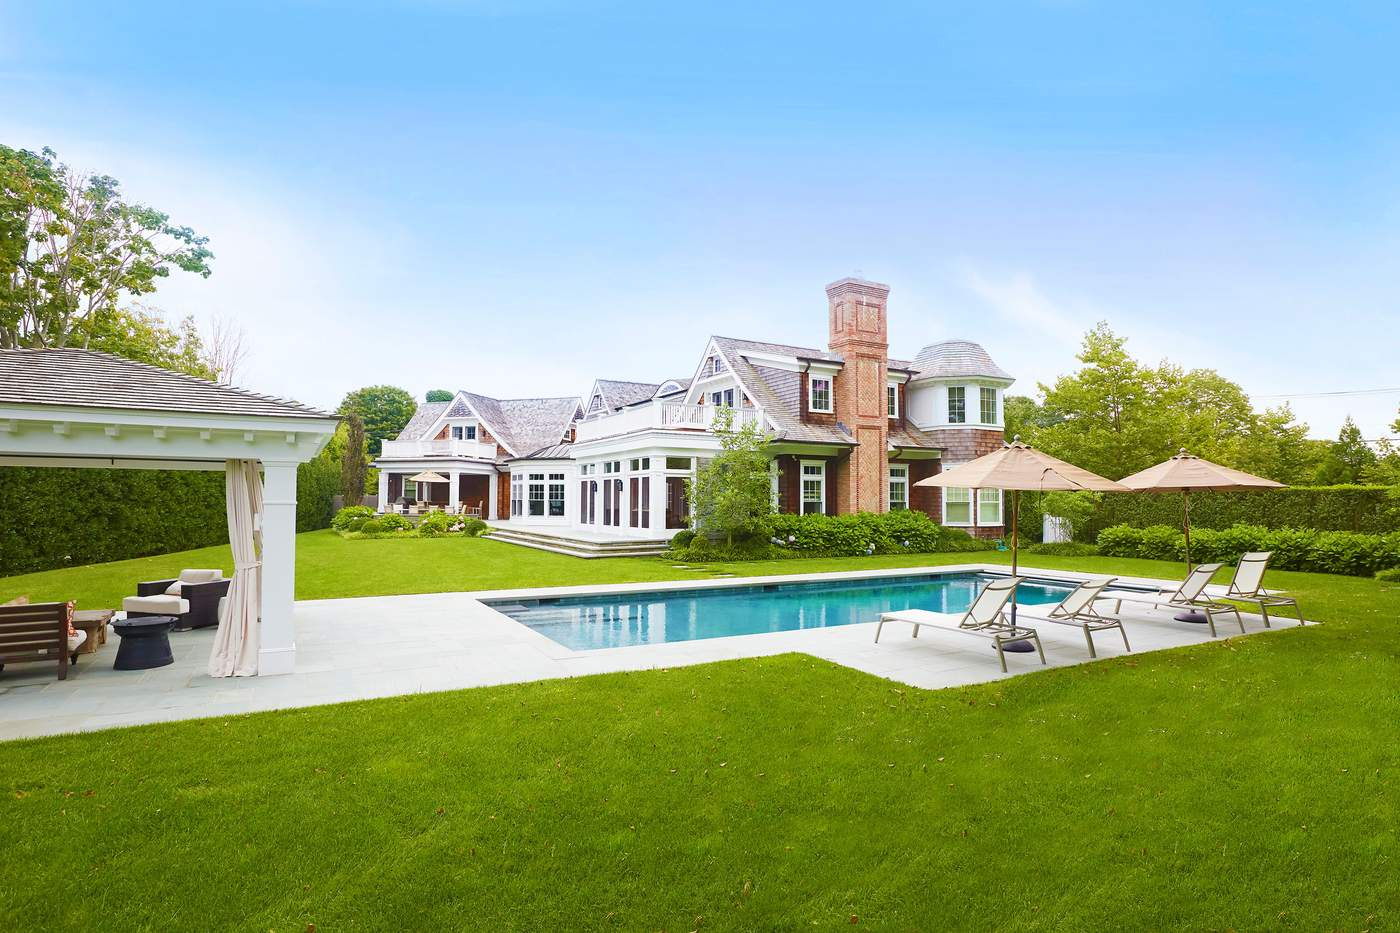 950 Ocean Road, Bridgehampton$9.25 millionJust a quick drive or bike ride to the bars and restaurants in the village of Bridgehampton, this traditional six-bedroom, seven-and-a-half bathroom home is also close to some of the Hamptons best beaches. It features an open floor plan, designer kitchen with a butler's pantry, a paneled library and a master suite with a private terrace and fireplace. There's also a guest suite with a sun deck and a separate staircase. Outdoor amenities include a covered pool, a screened porch with radiant heat and a fireplace and an outdoor kitchen with a built-in barbecue.